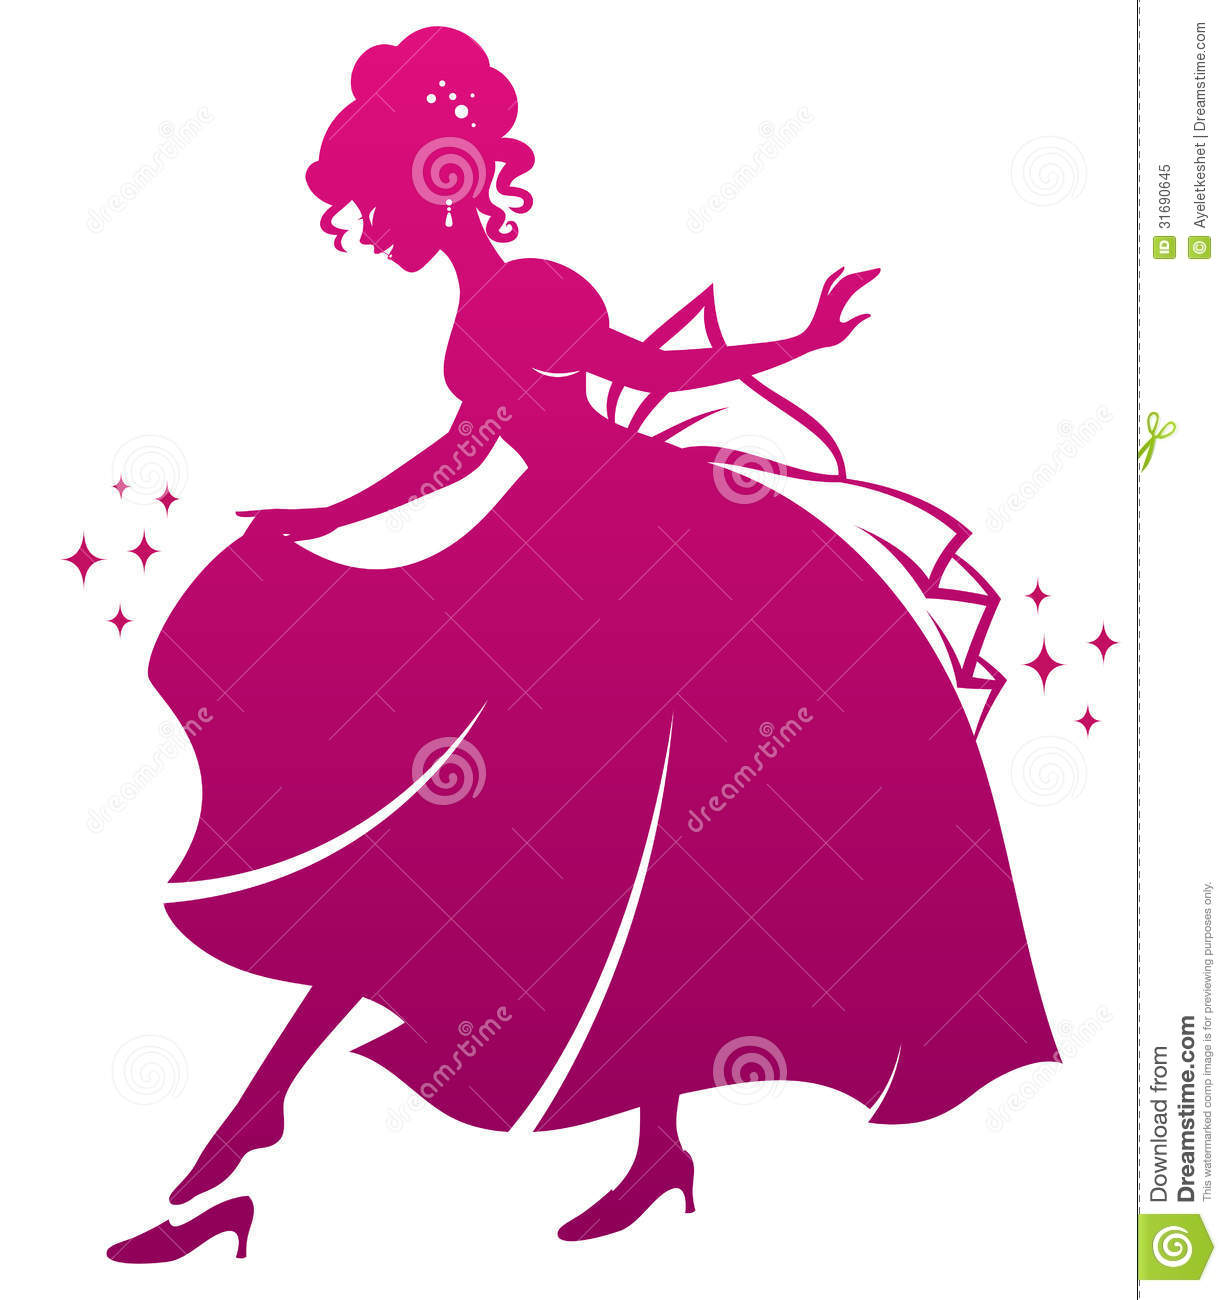 Princess And Her Shoe Royalty Free Stock Photo - Image: 31690645